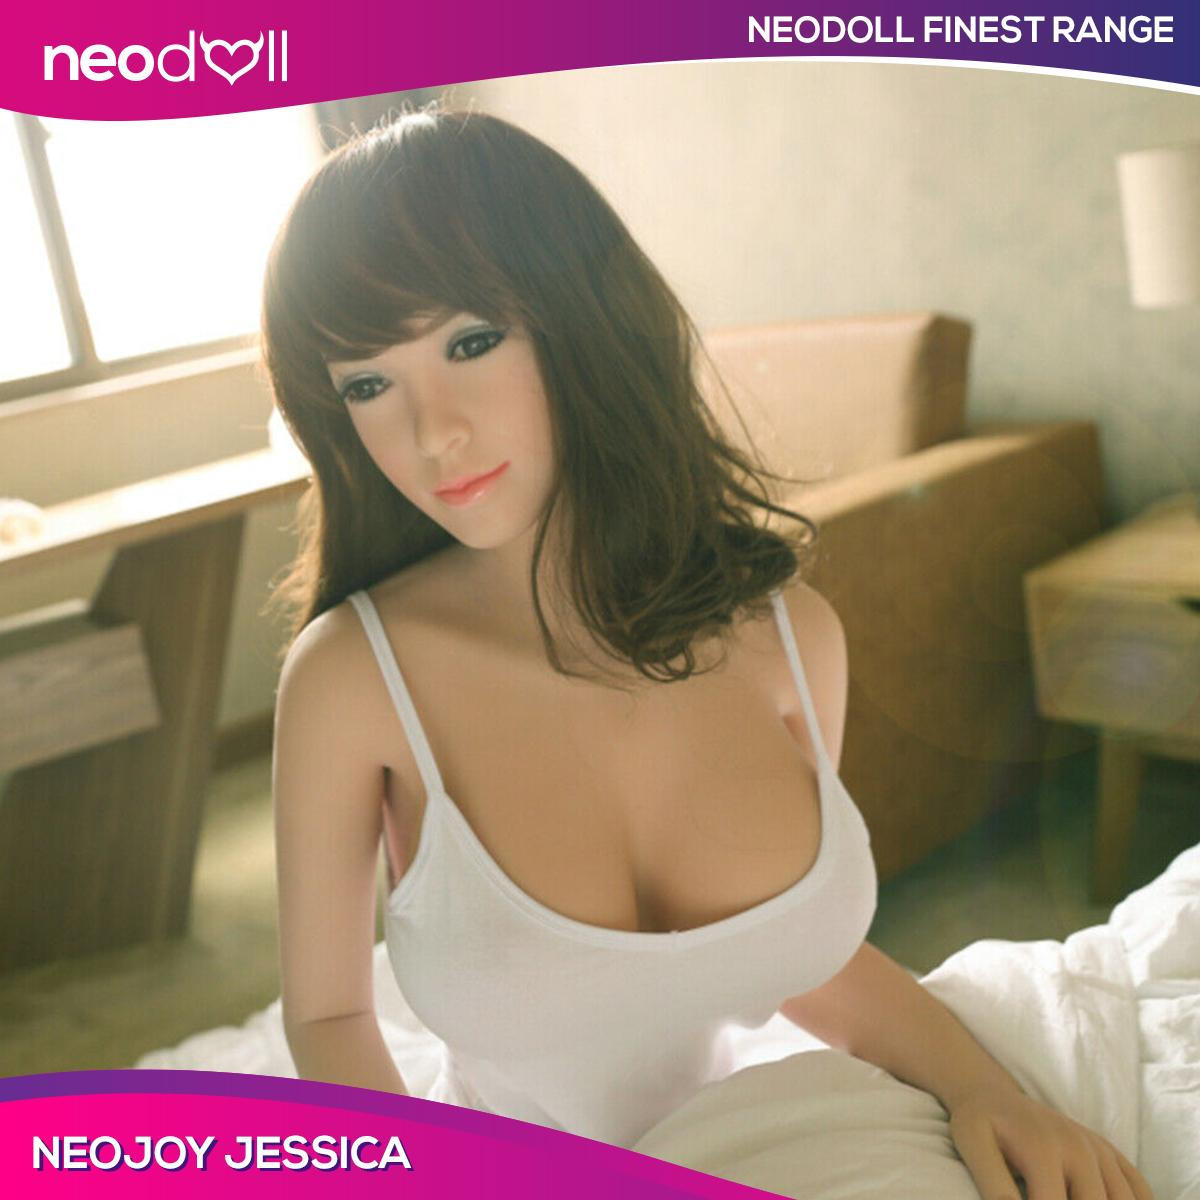 Neodoll Finest Jessica - Realistic Sex Doll - 158cm